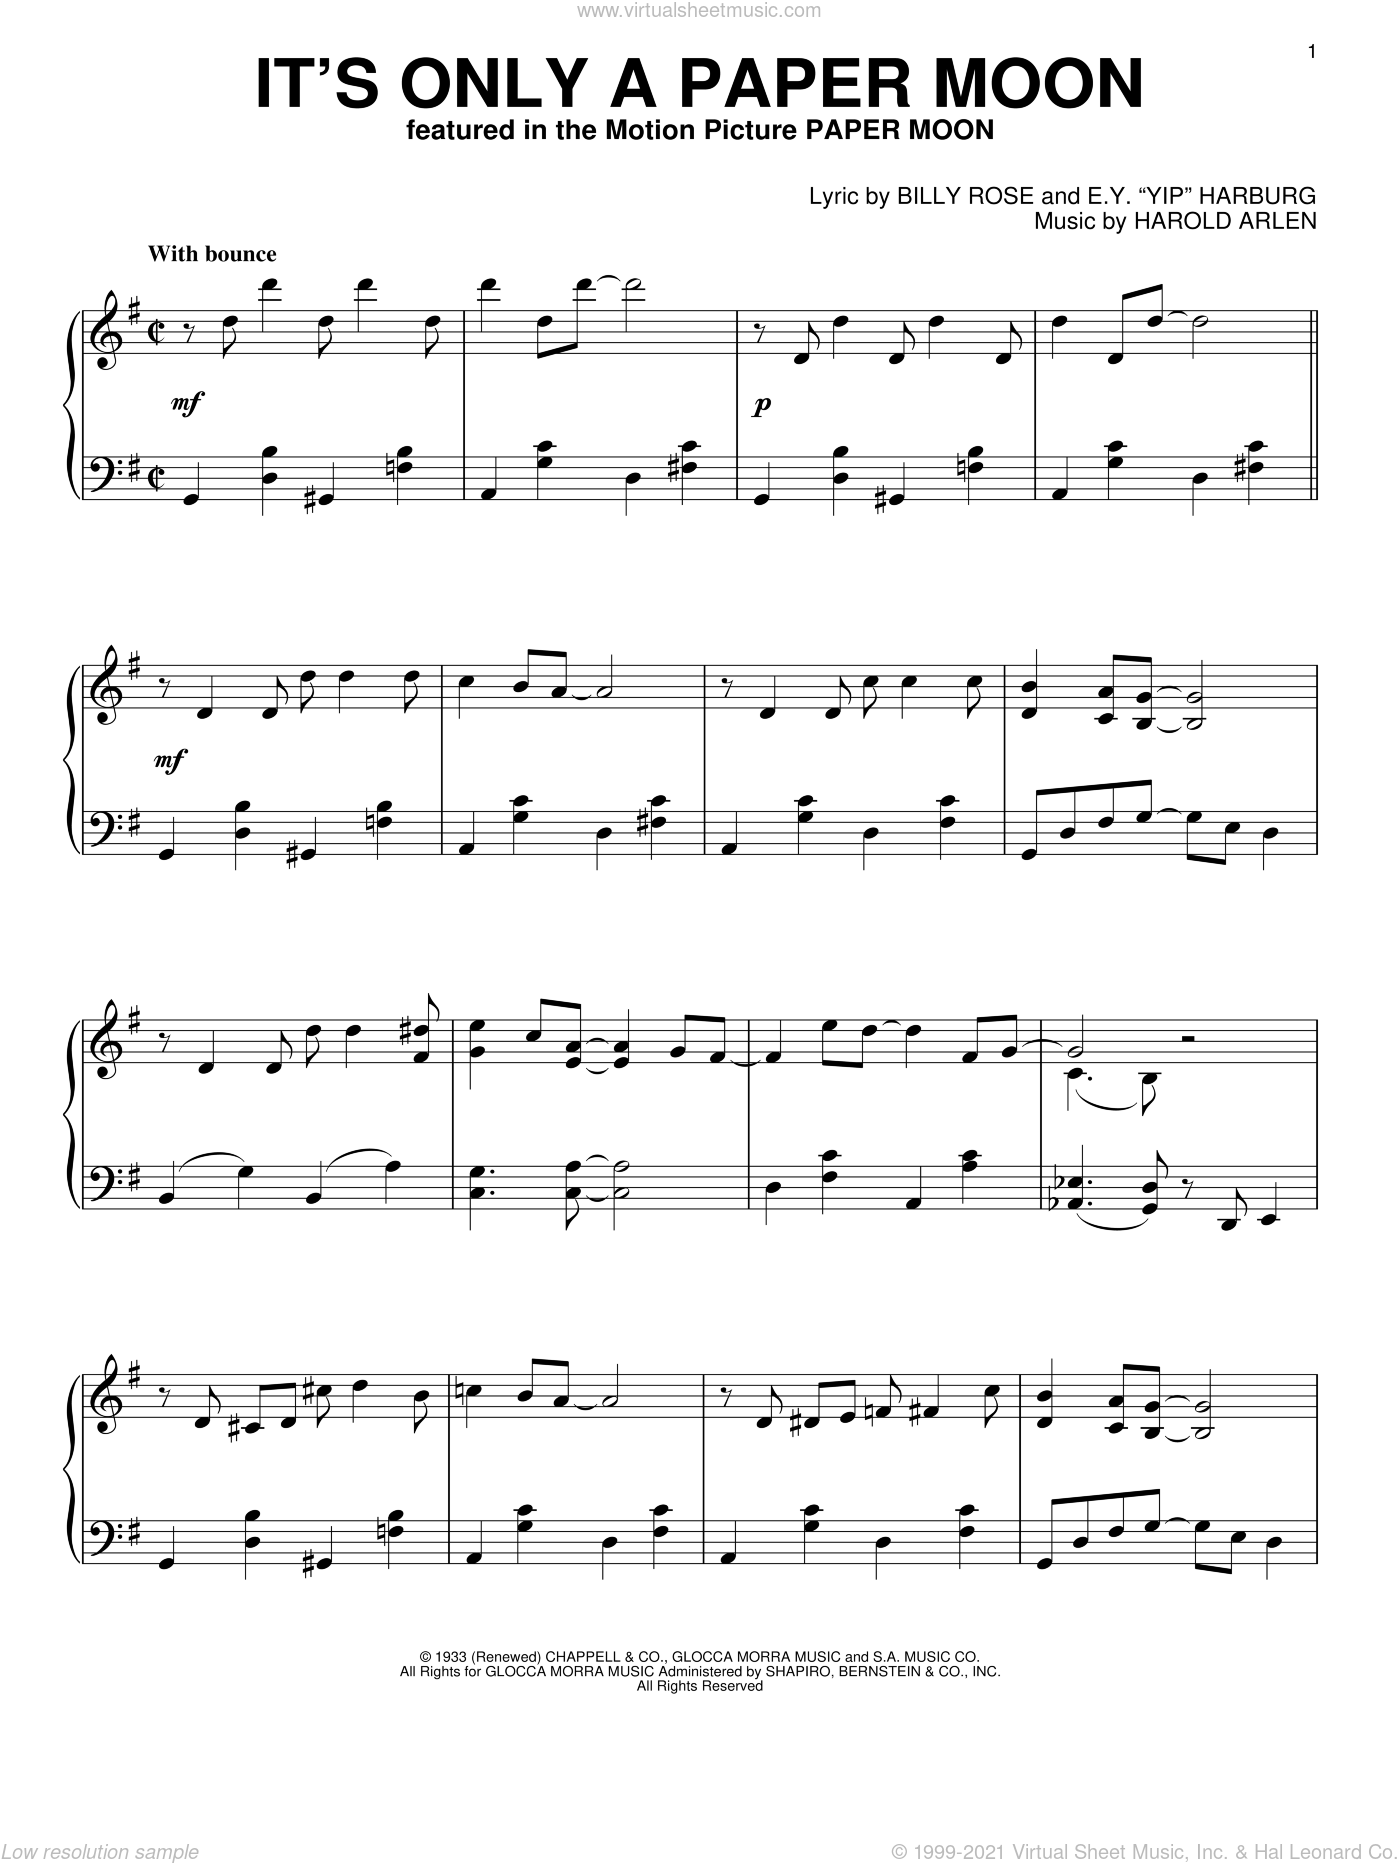 It's Only A Paper Moon sheet music for piano solo by Harold Arlen, Billy Rose and E.Y. Harburg, intermediate skill level